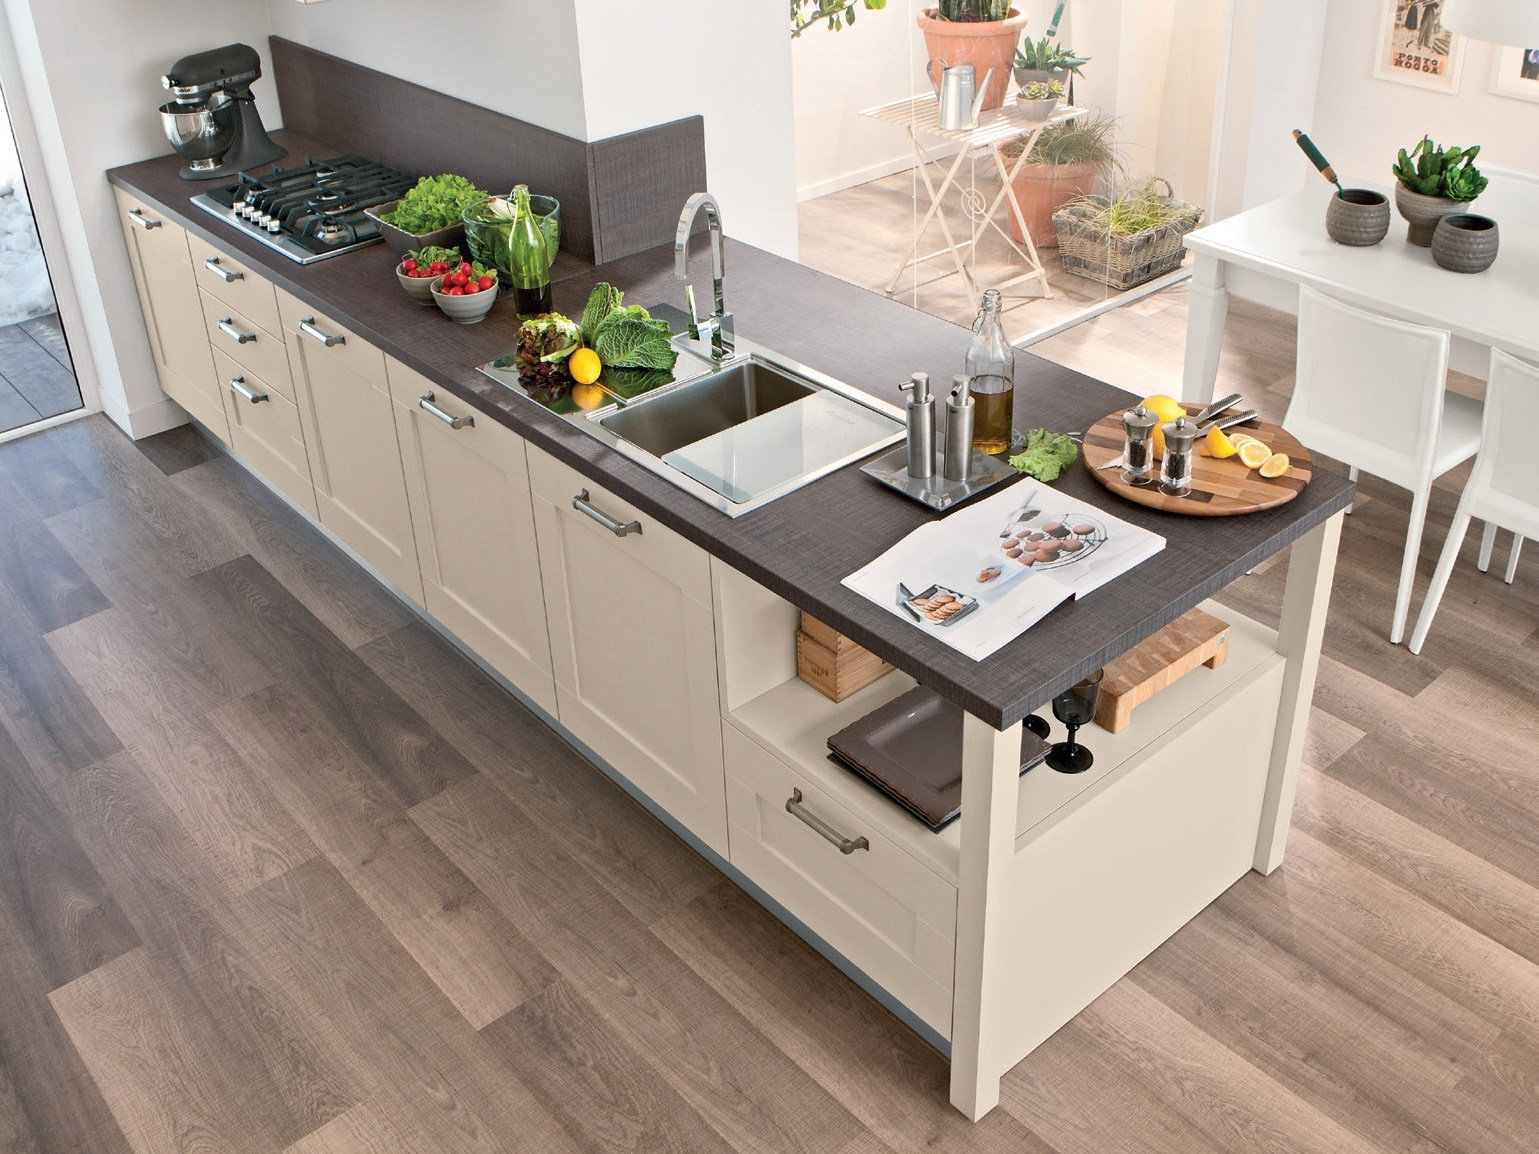 GALLERY | Lacquered kitchen By Cucine Lube